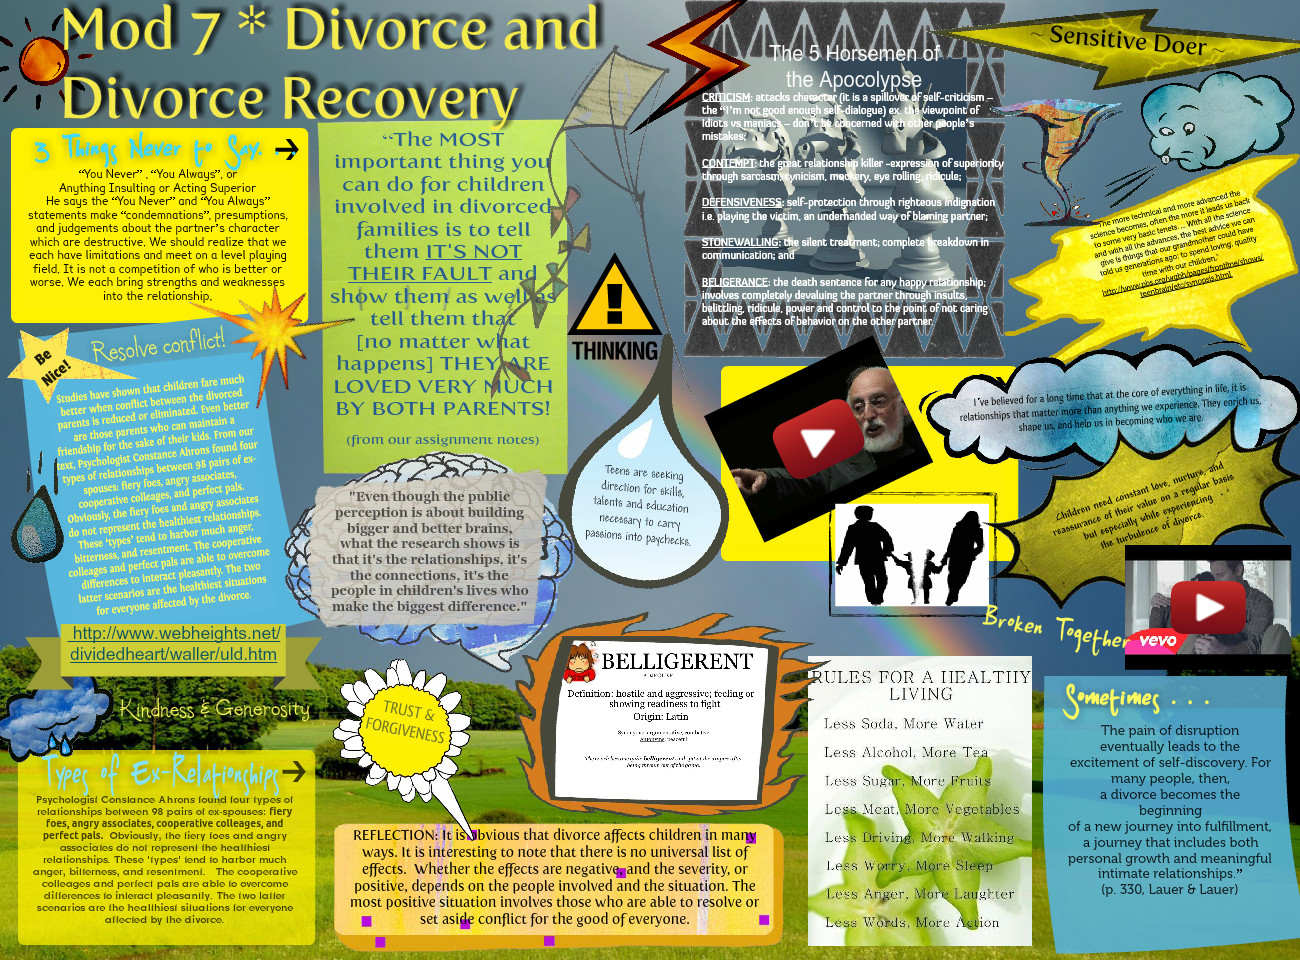 Mod 7- Divorse and Divorce Recovery